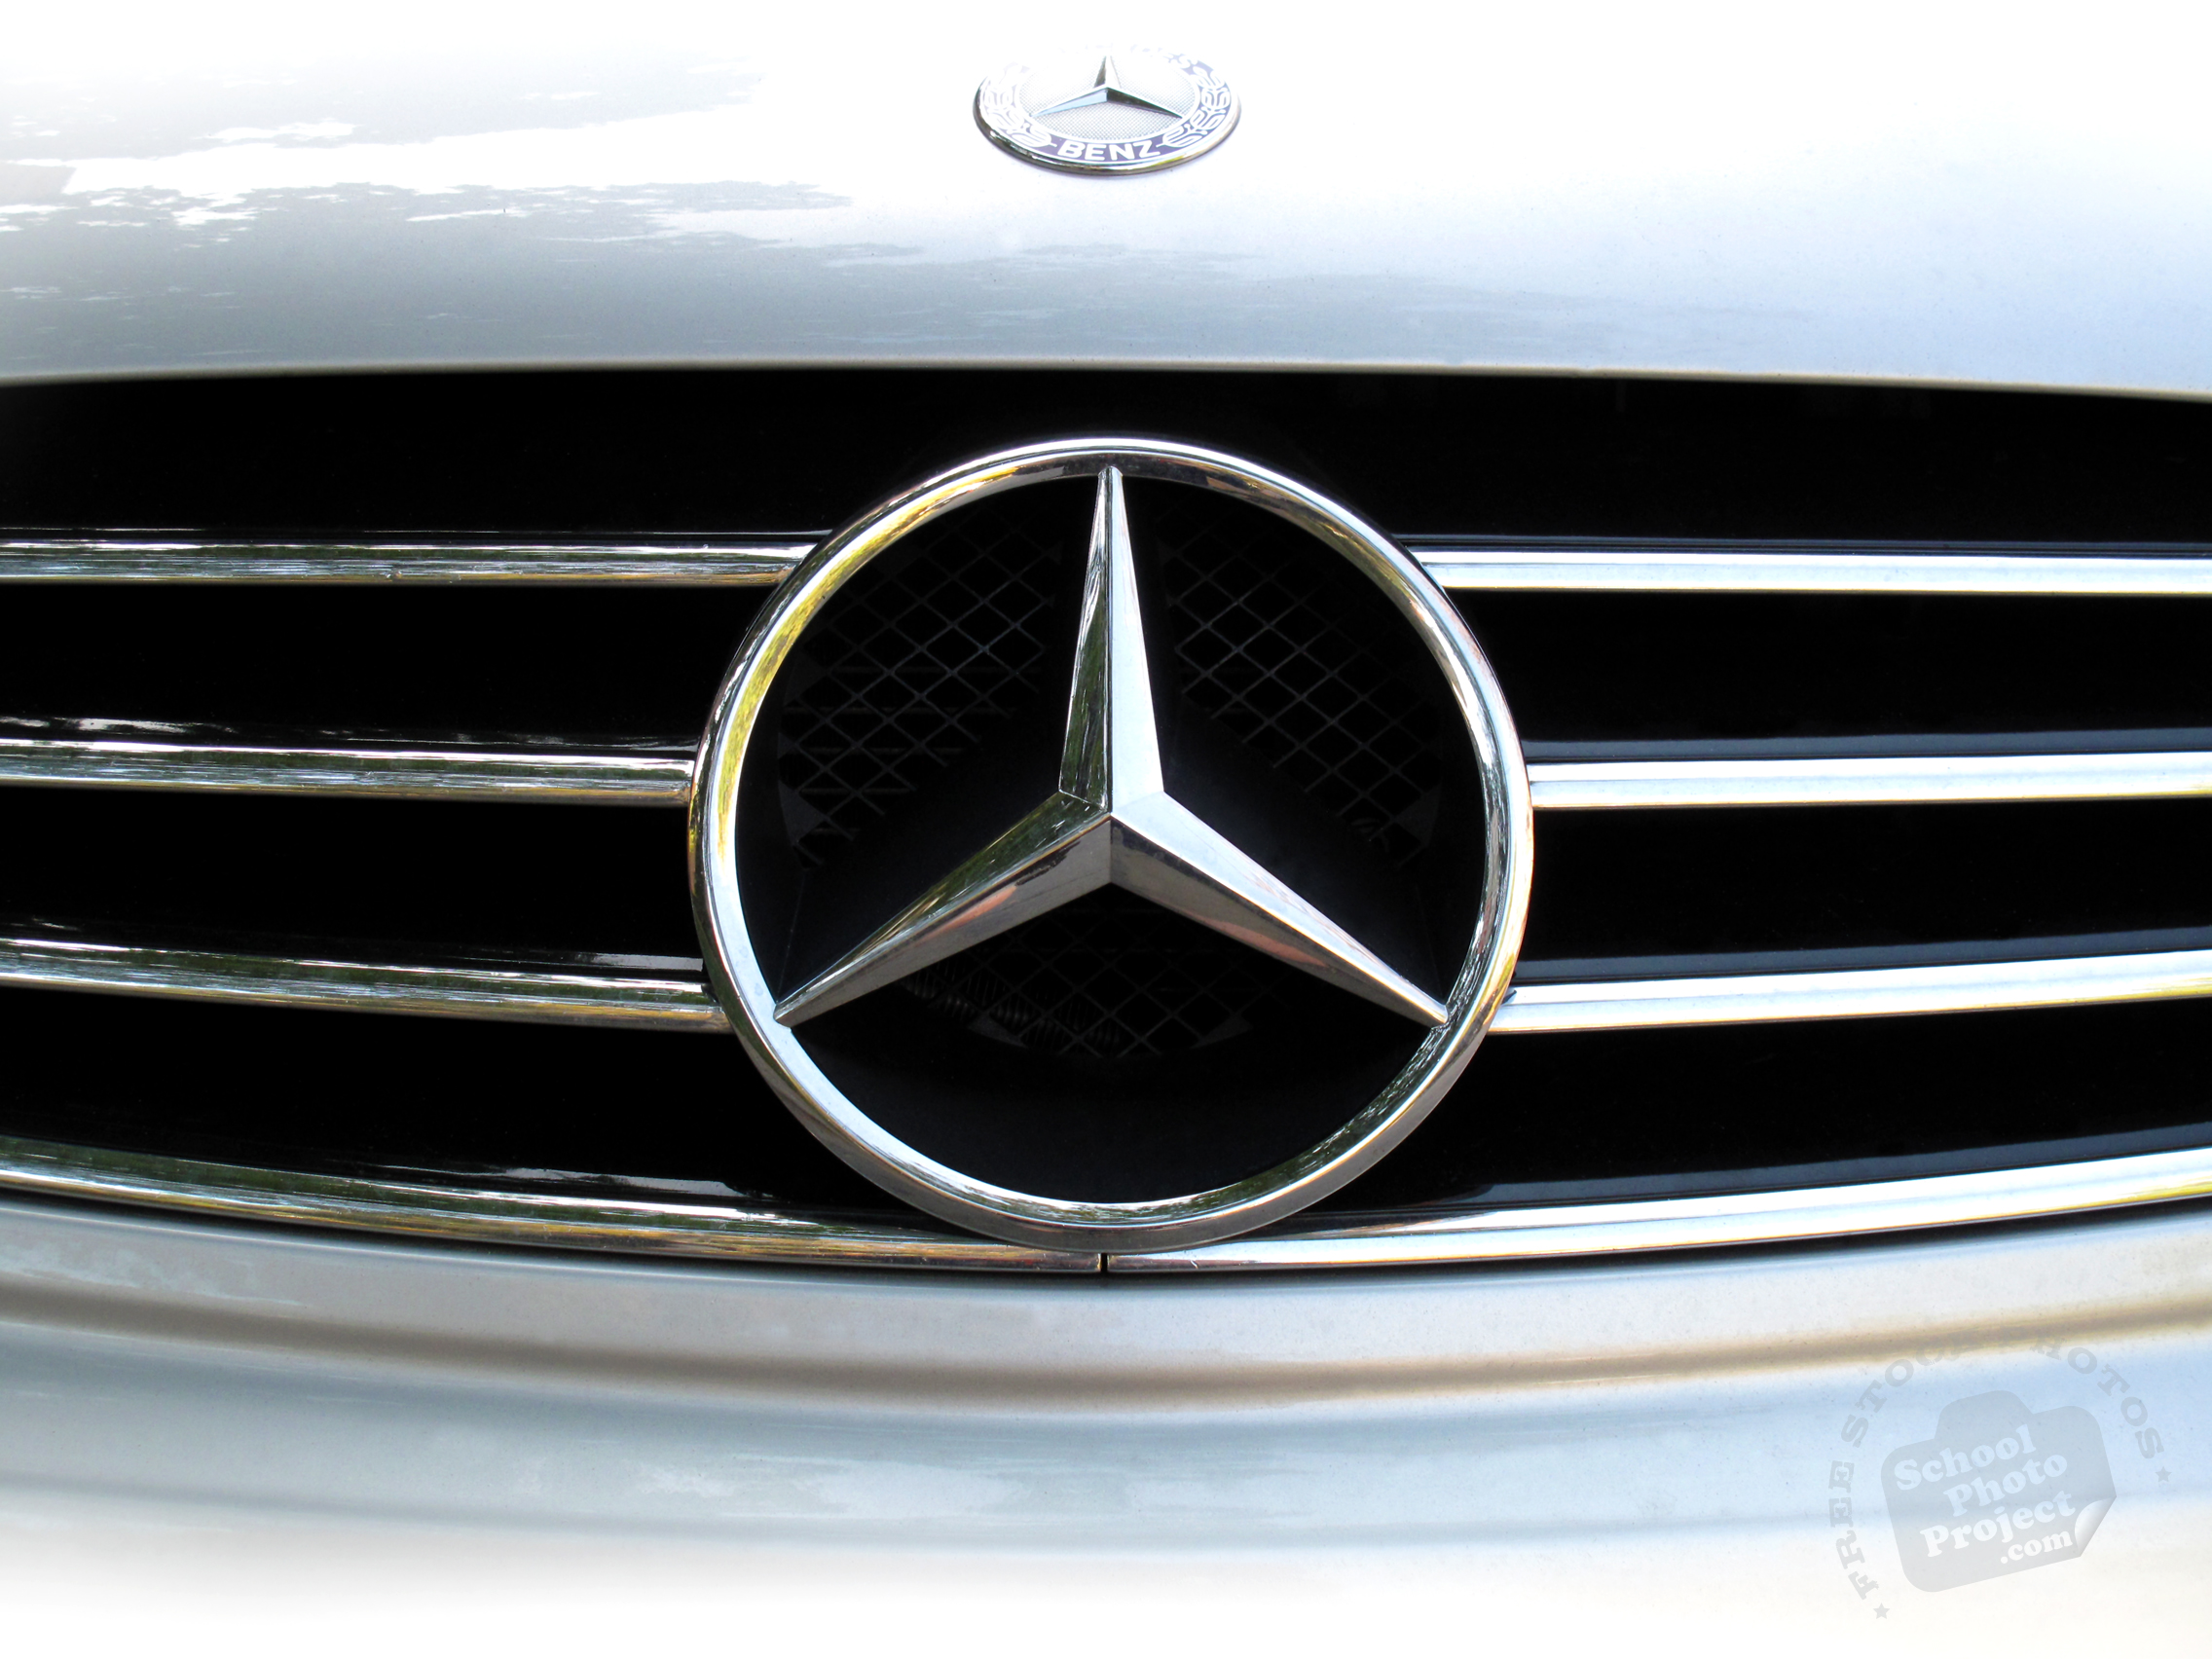 Mercedes benz logo free stock photo image picture for Mercedes benz stock symbol